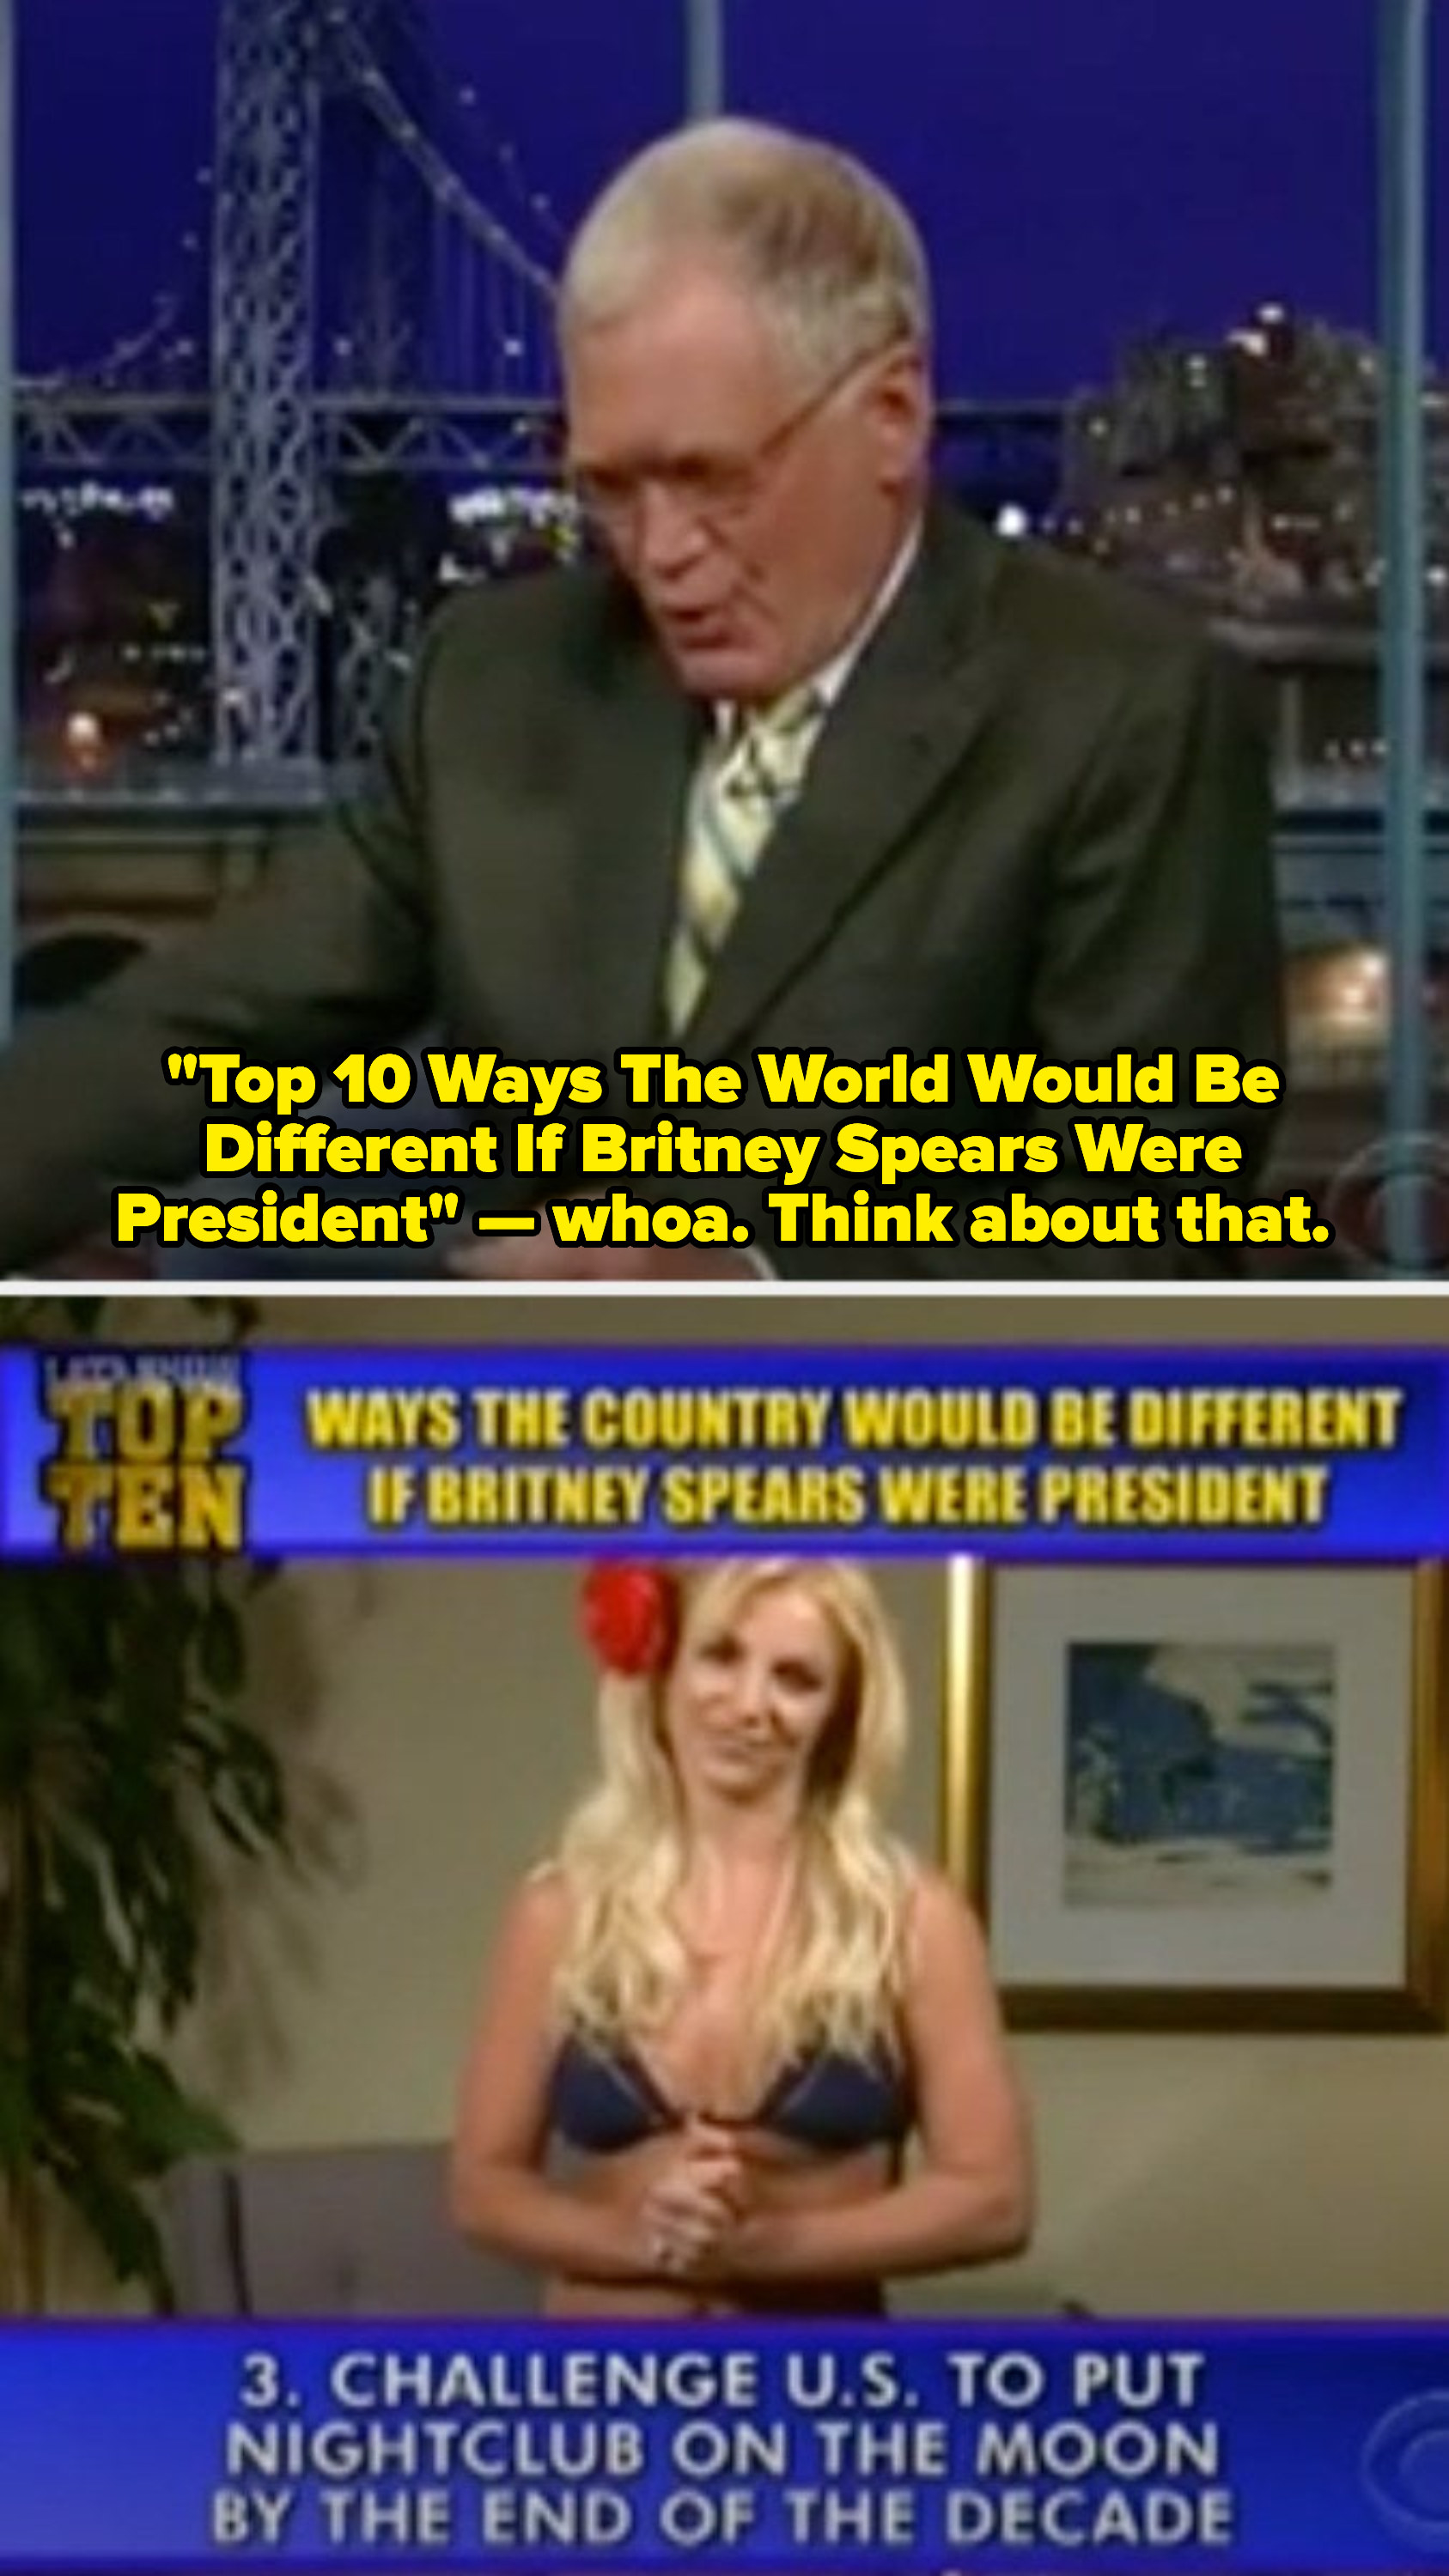 """Letterman mocking Spears if she were president of the US, making her read insulting Top 10 one-liners, like: """"Challenge US to put nightclub on the moon by the end of the decade"""""""